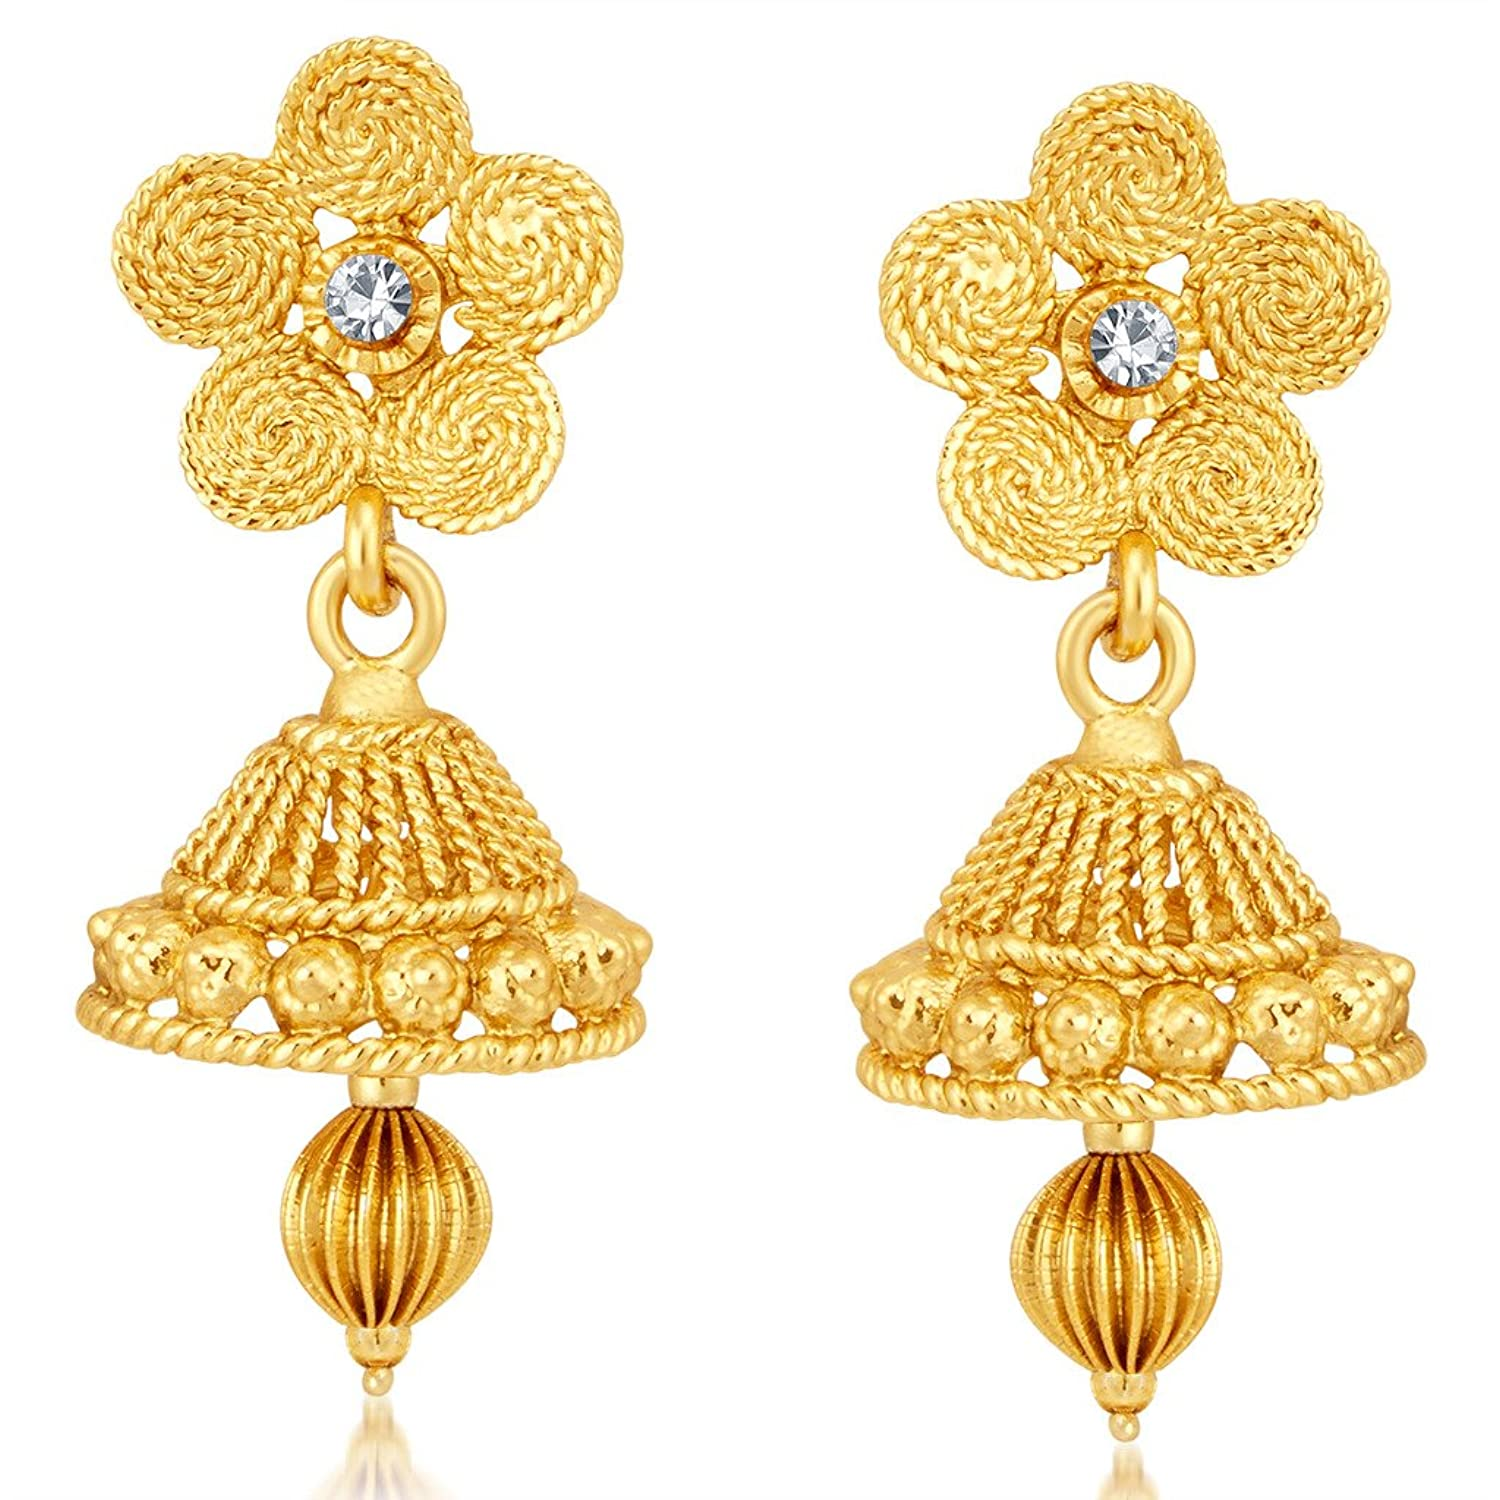 Best Of New Design Of Jewellery In Gold | Jewellry\'s Website